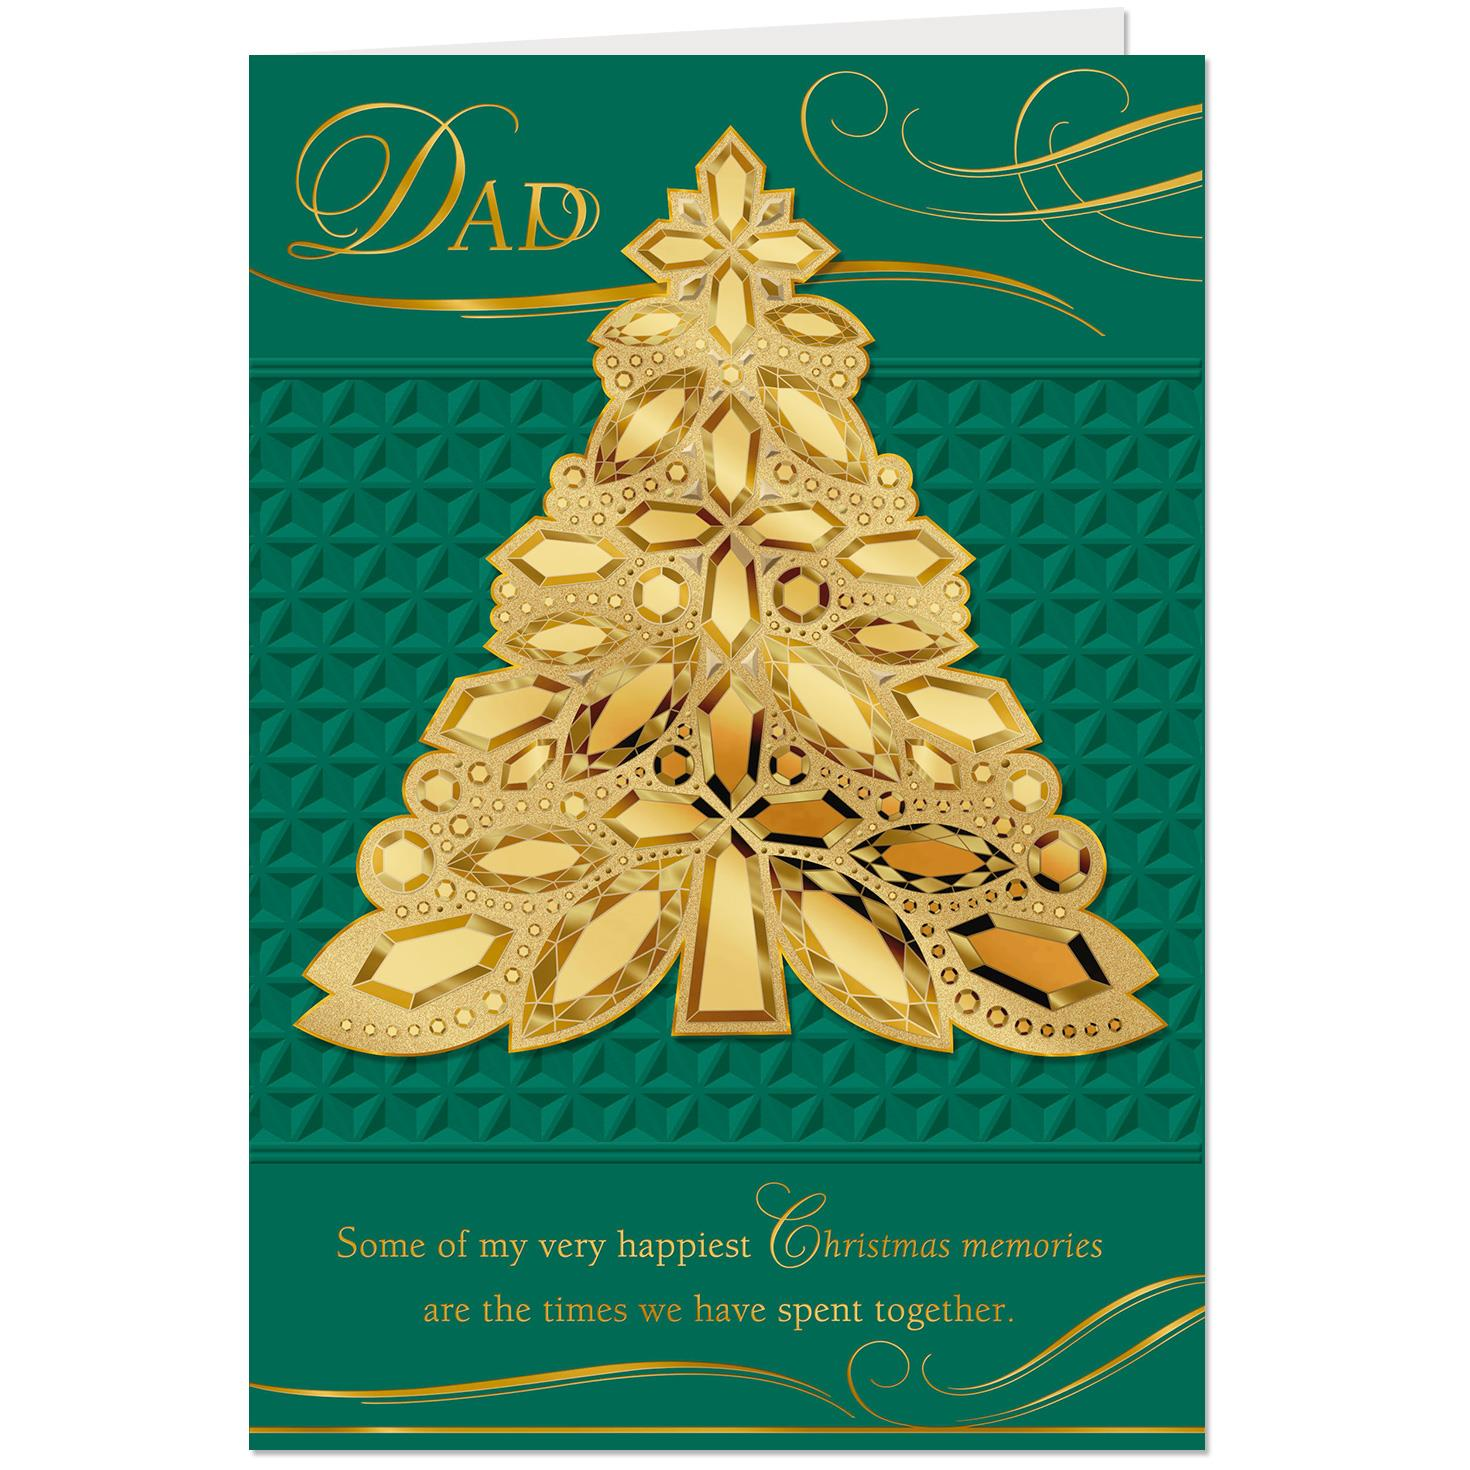 my happiest christmas memories christmas card for dad greeting cards hallmark